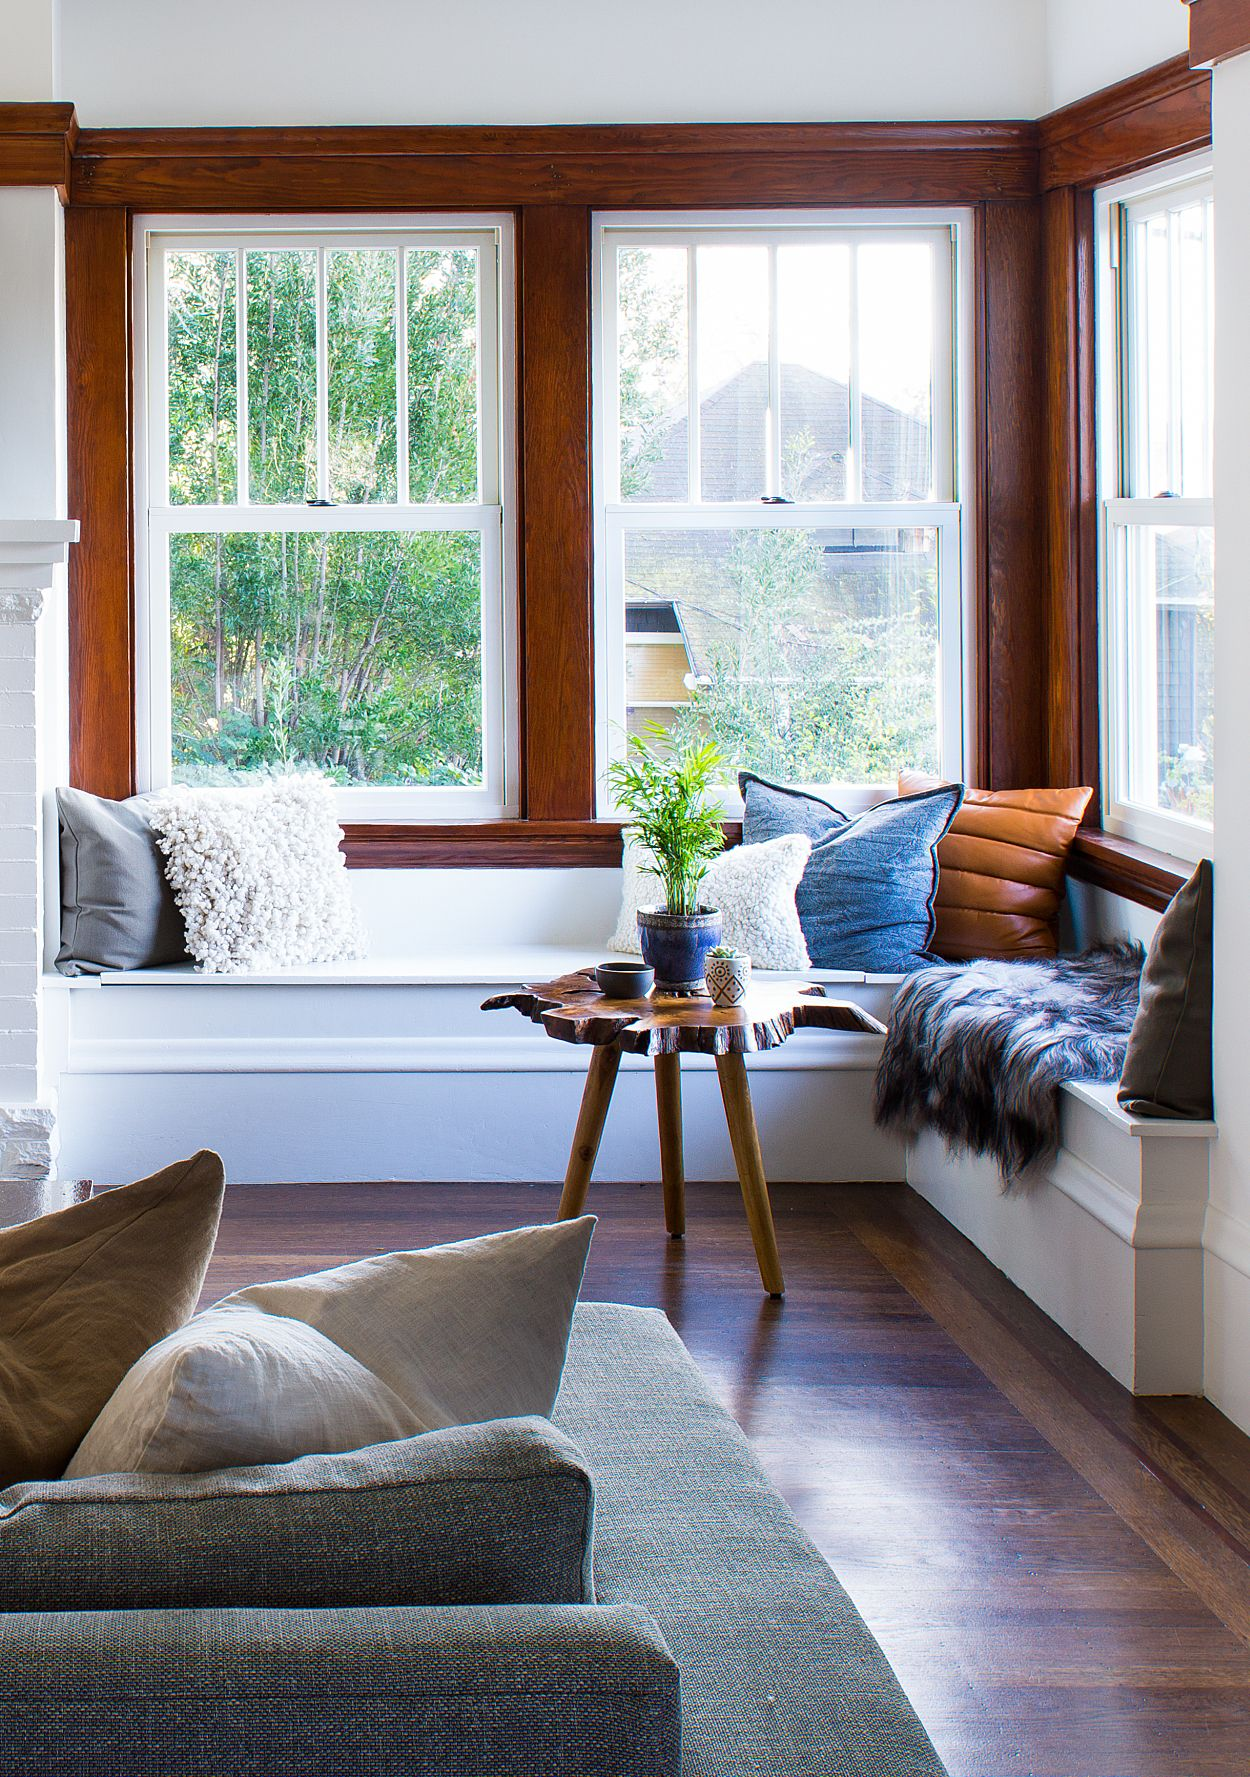 A 1900's Craftsman Home Gets a Happy Modern Makeover #craftsmanstylehomes